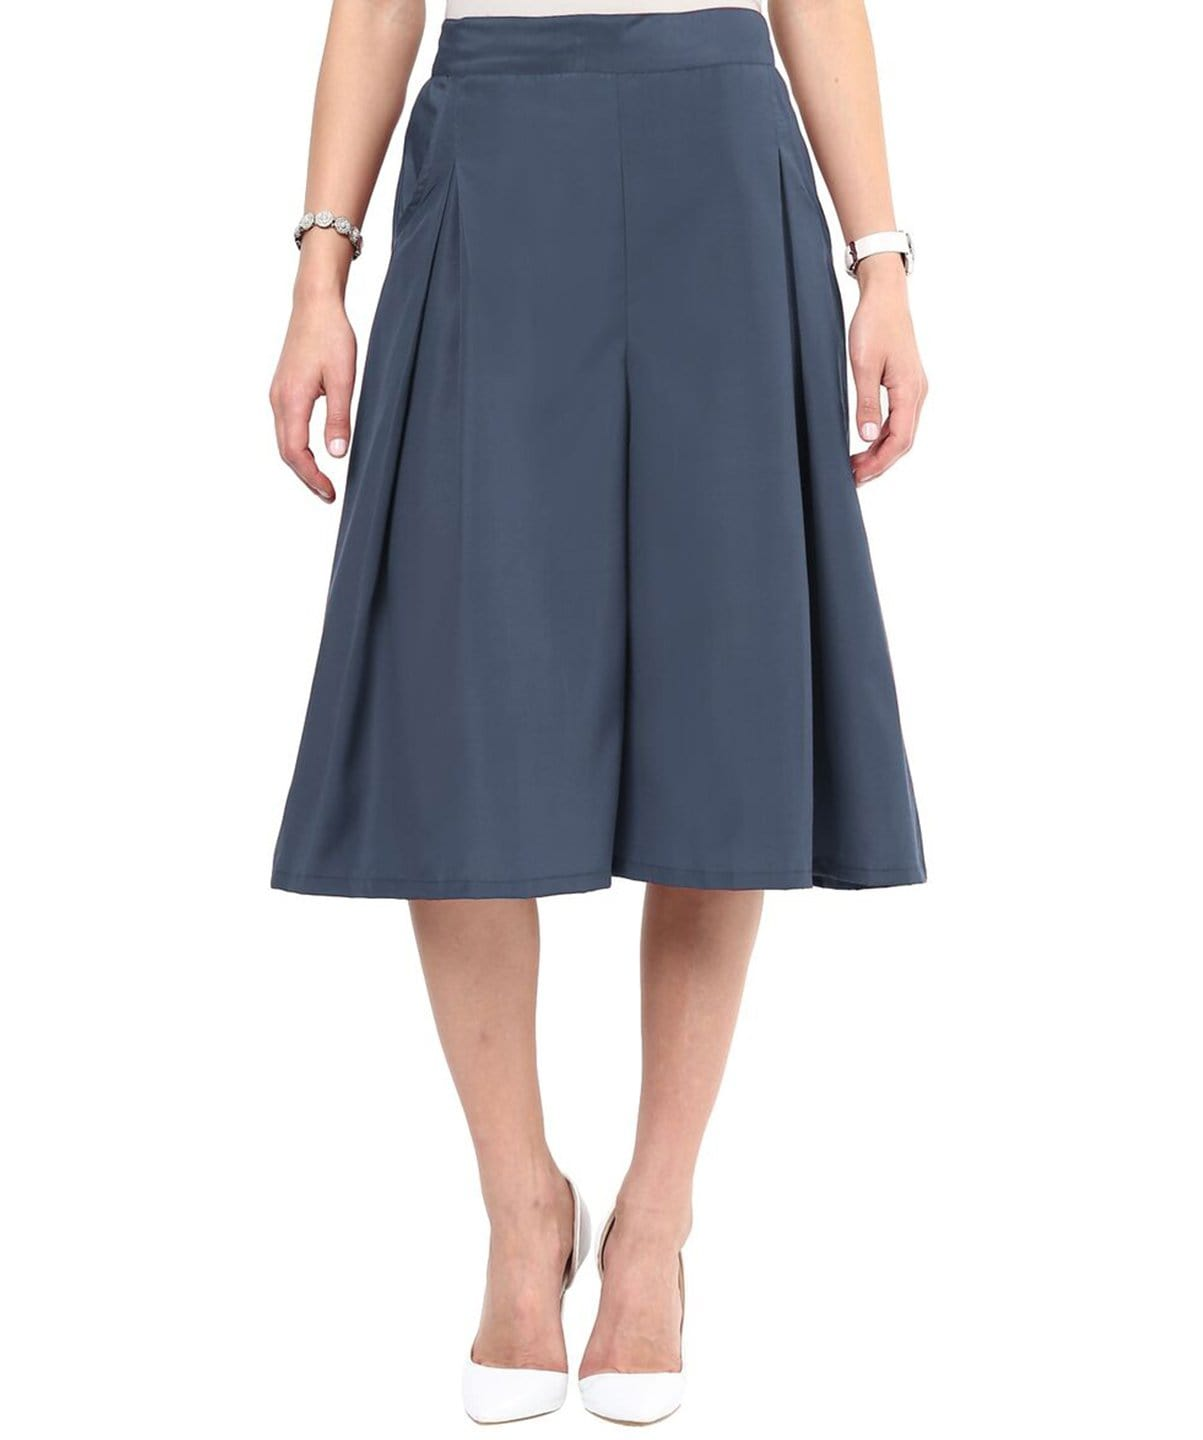 Uptownie Grey Box Pleat Adjustable Culottes 1 trendsale